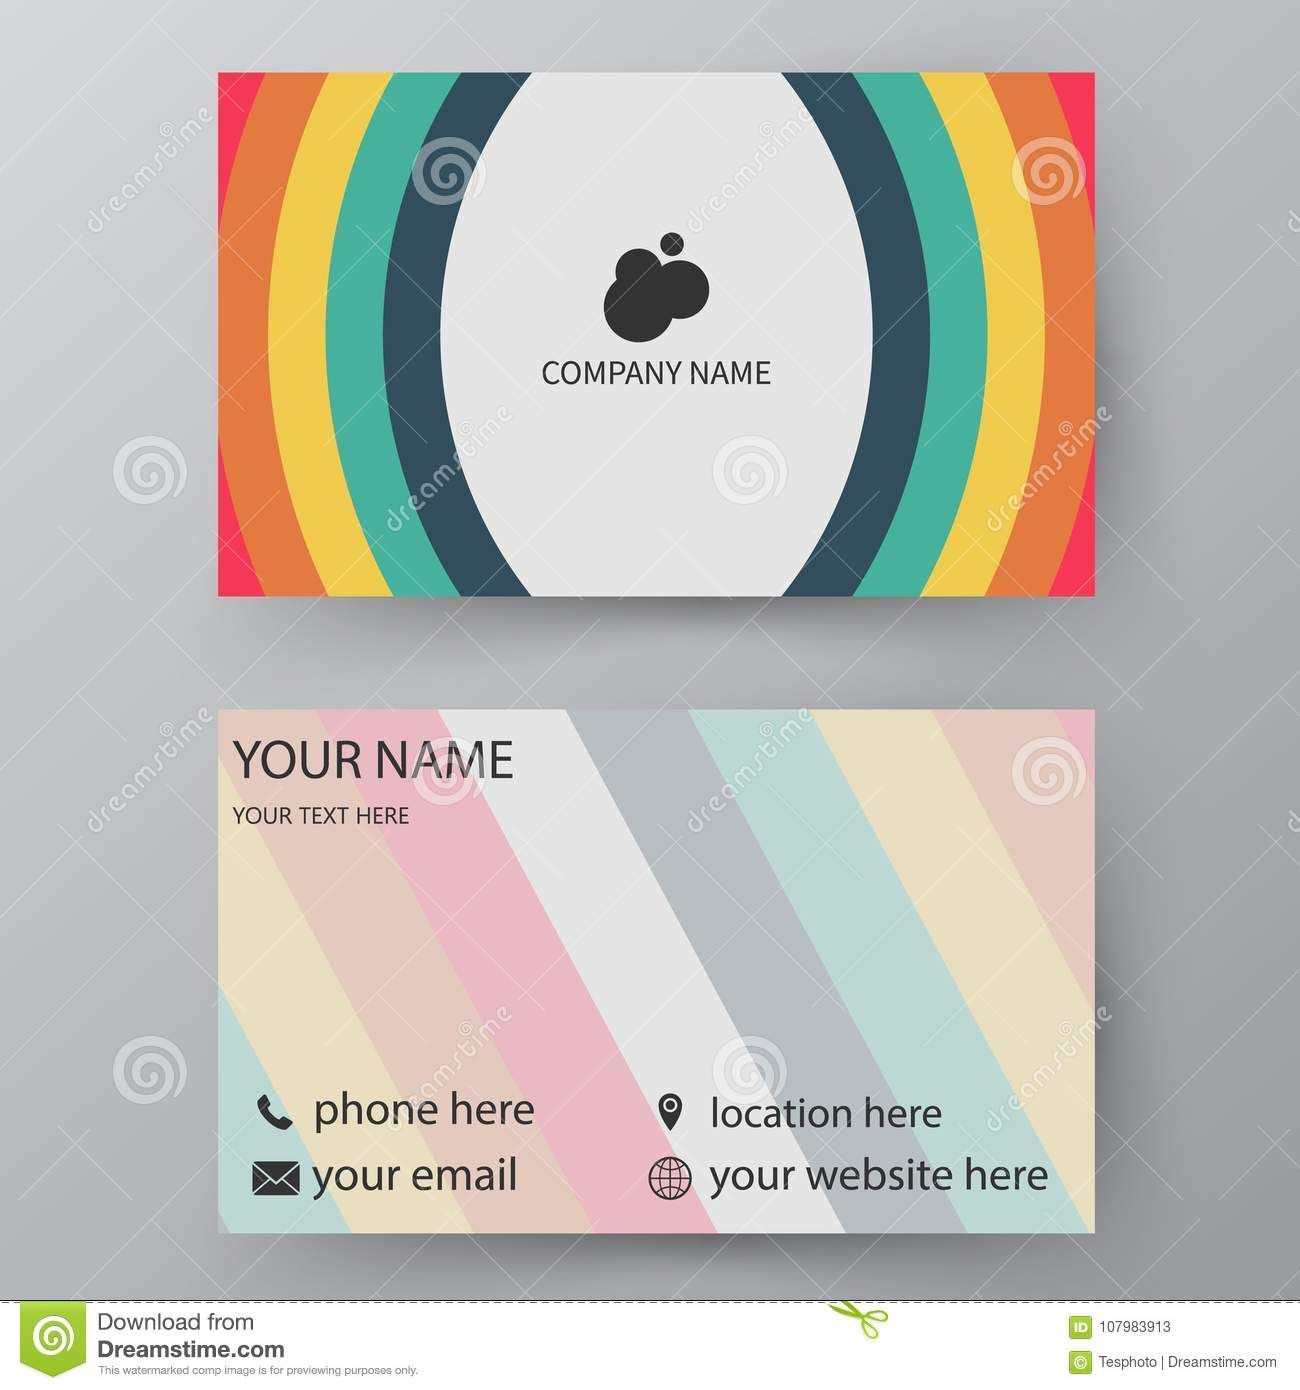 Modern Presentation Card With Company Logo Vector Business Template Visiting For And Personal Use Illustration Design